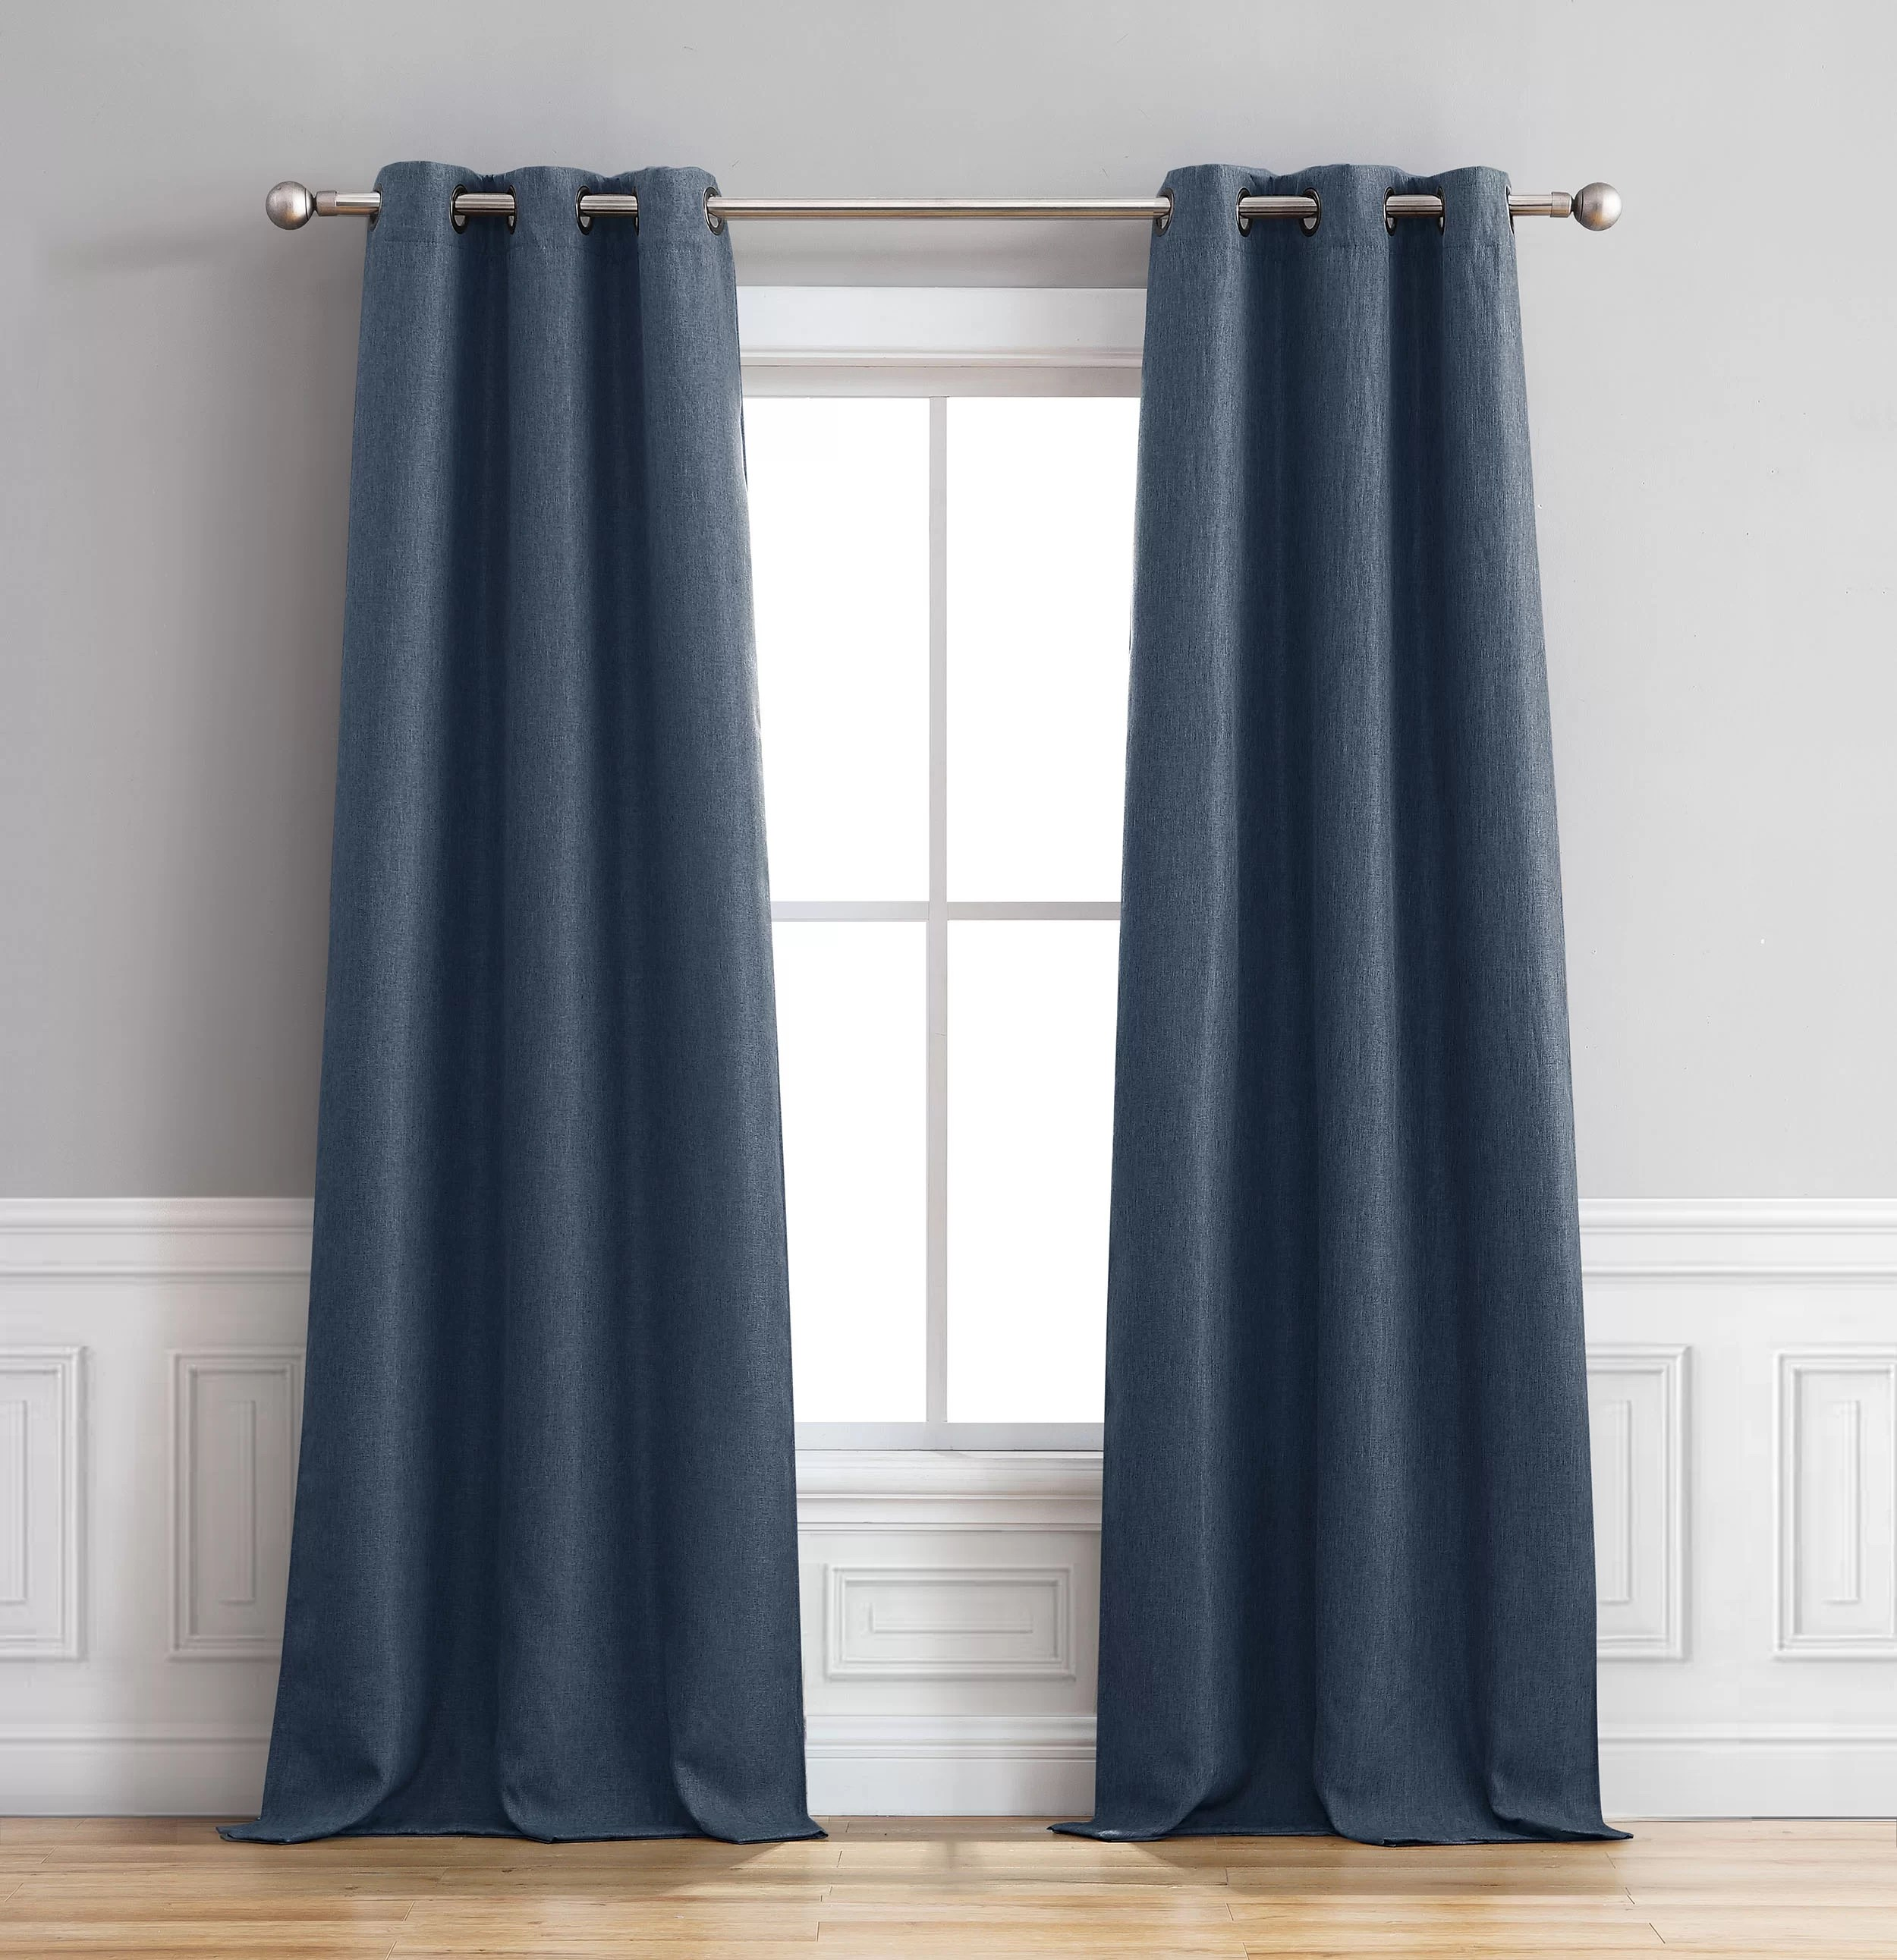 Curtain Insulation Fabric Sokol Faux Linen Room Darkening Thermal Grommet Curtain Panels